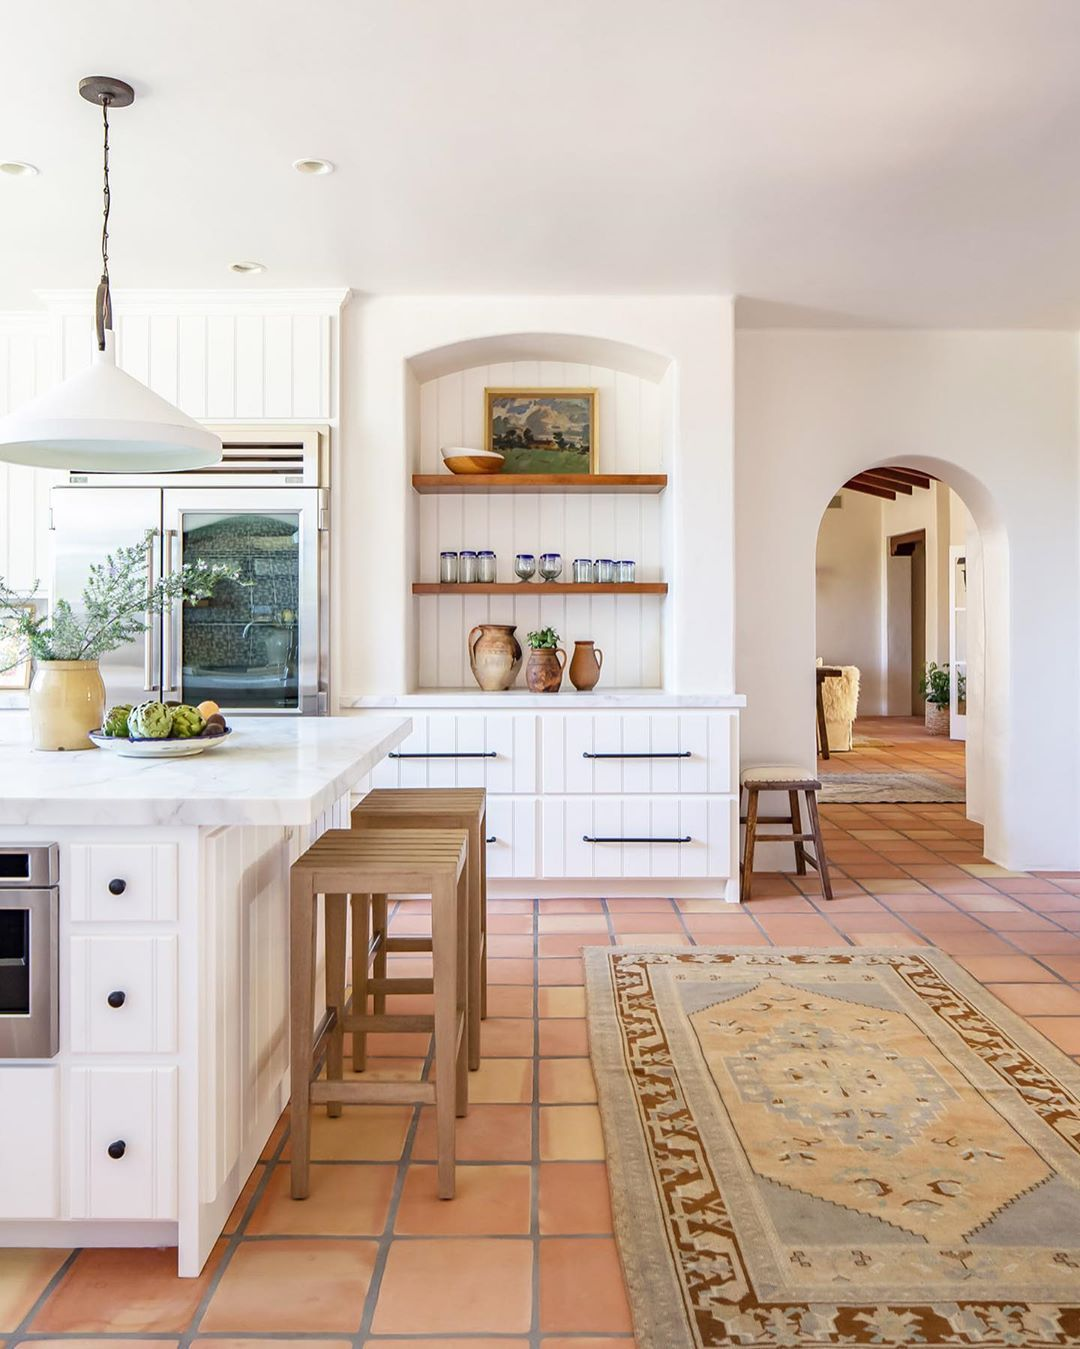 Rue On Instagram Step Inside This Early Californian Style Home Designed By Intimatelivinginteriors In 2020 Spanish Style Kitchen Spanish Style Home Spanish Bungalow